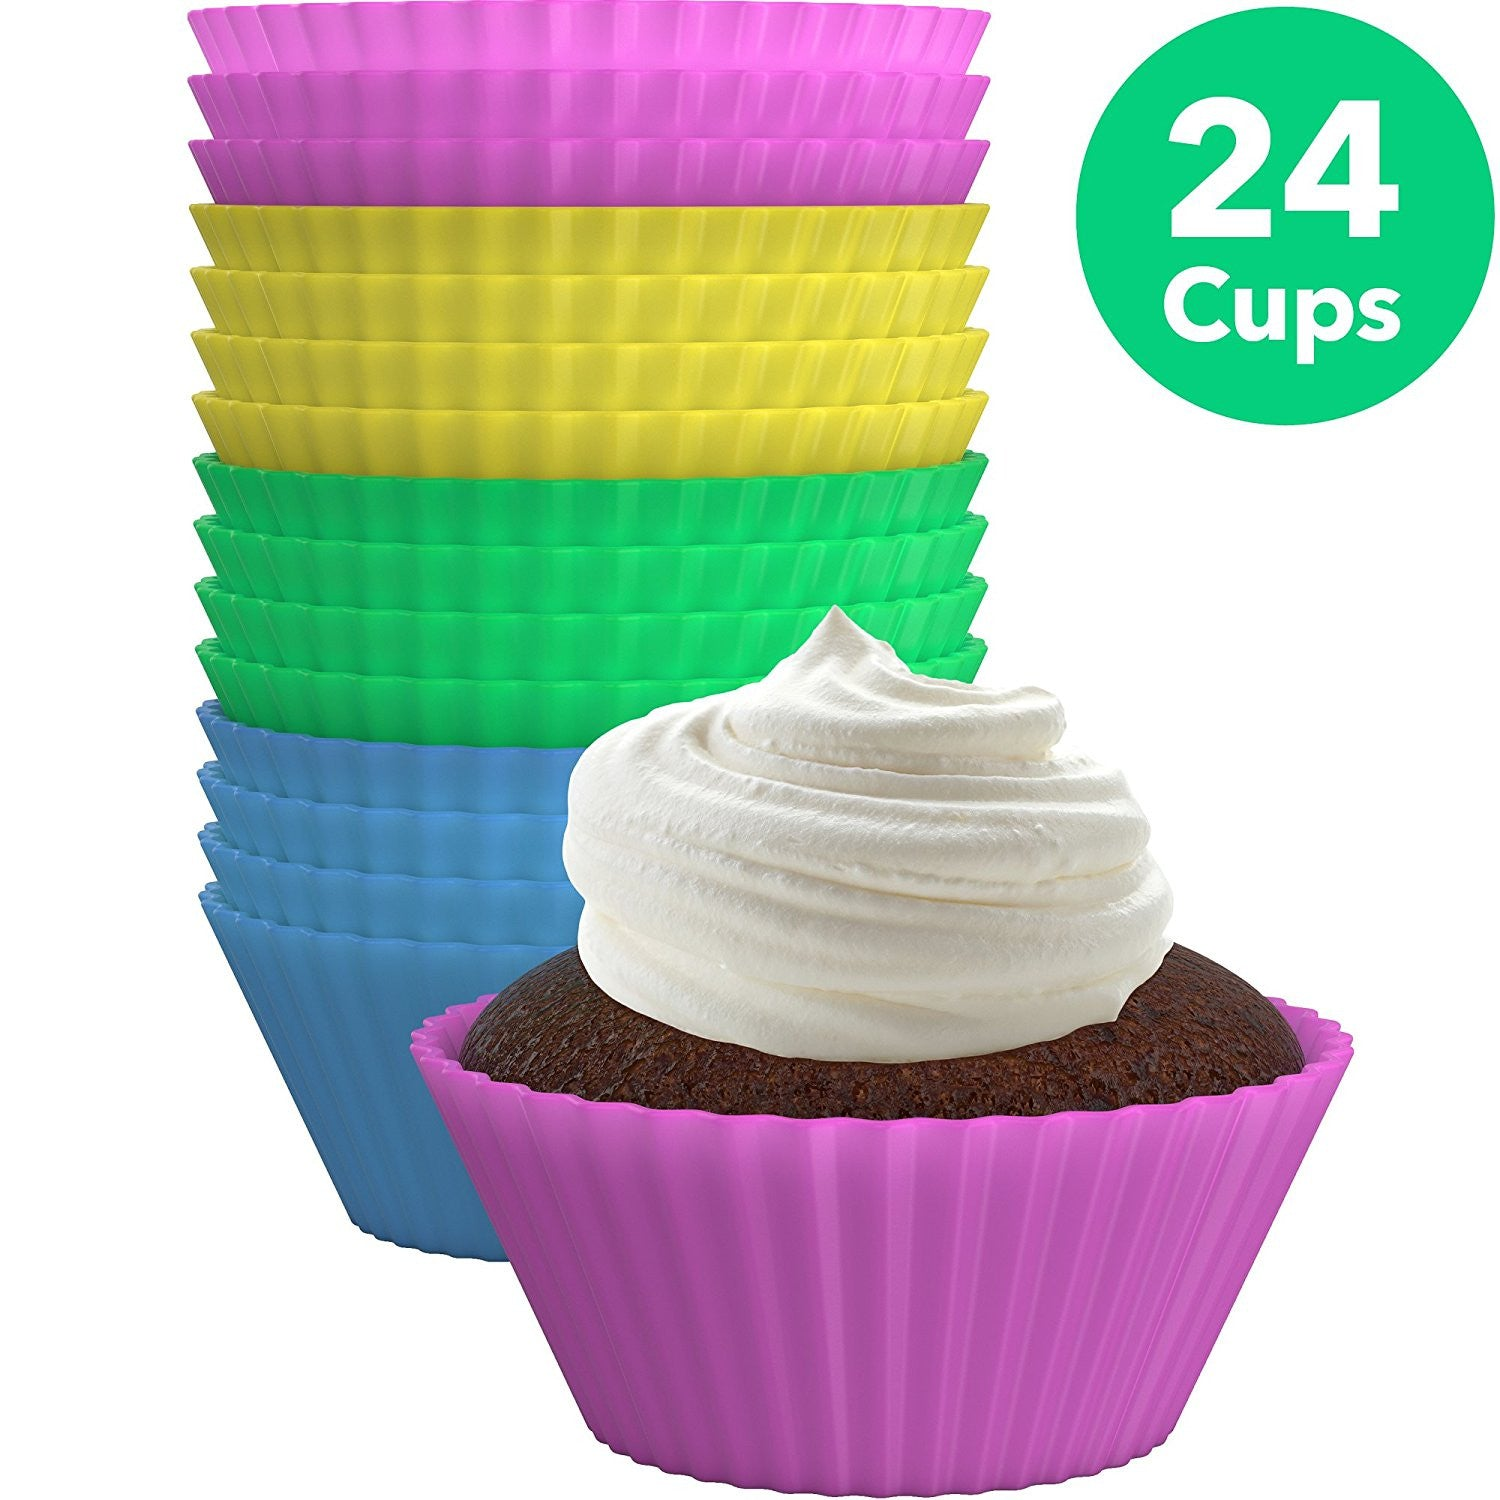 totally baked baking cups vremi home kitchen